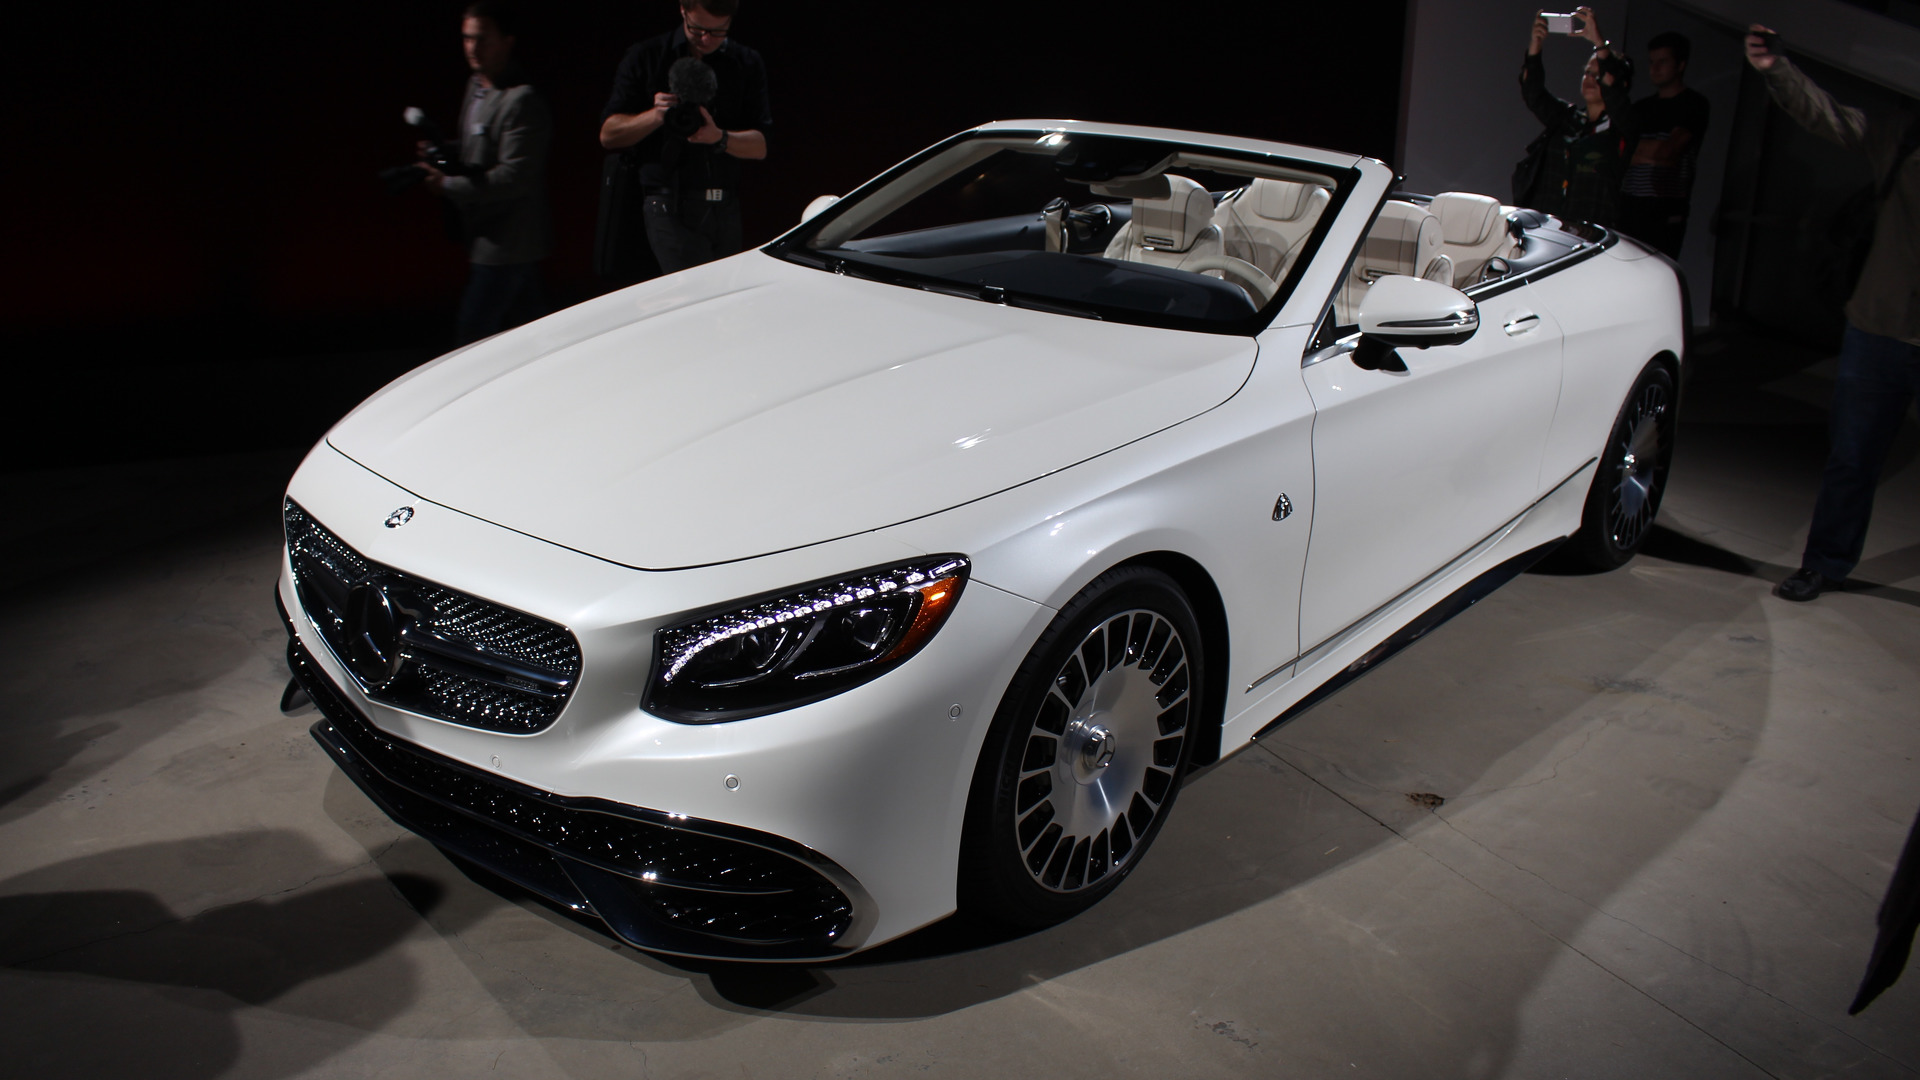 Mercedes maybach handpicking s650 cabriolet buyers in u s for Mercedes benz s650